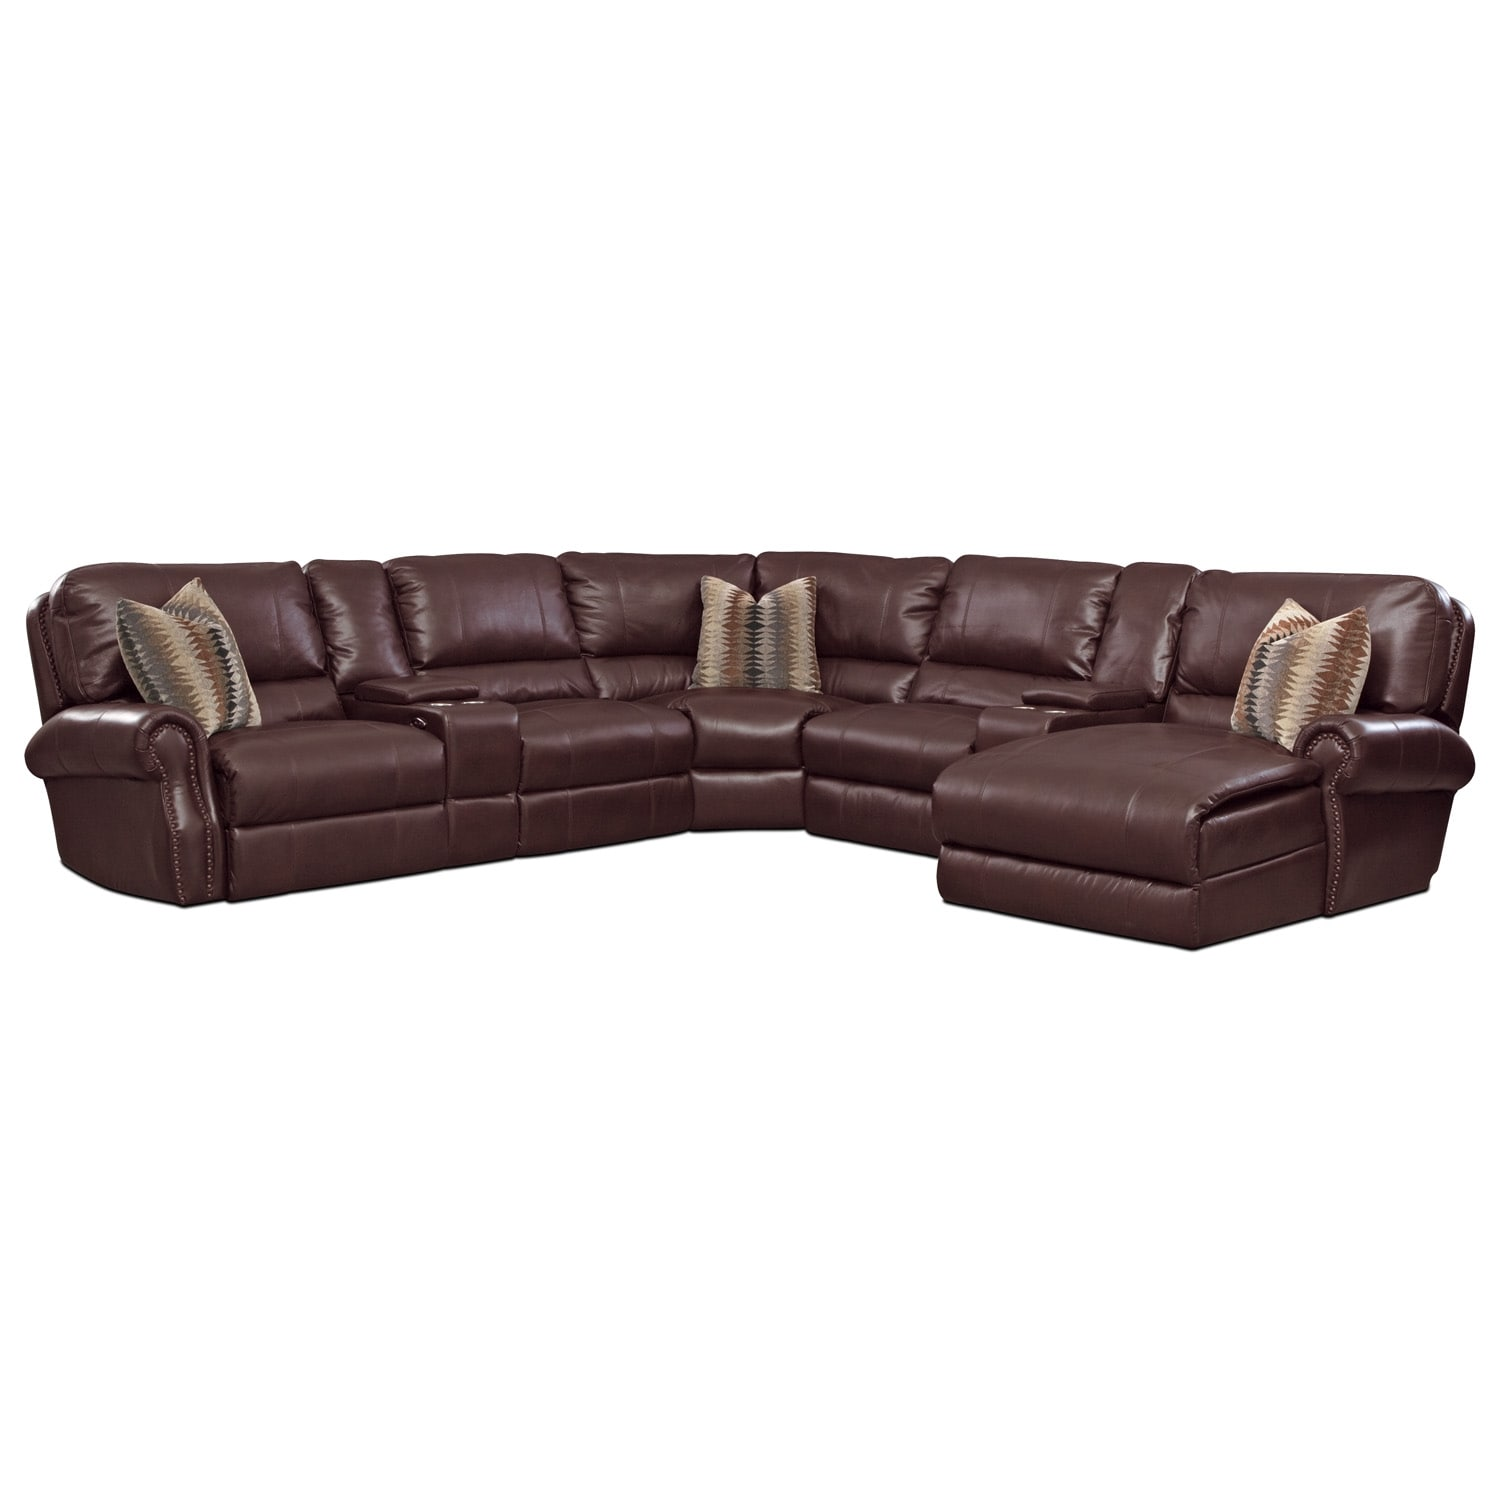 Princeton 5 Pc. Power Reclining Sectional